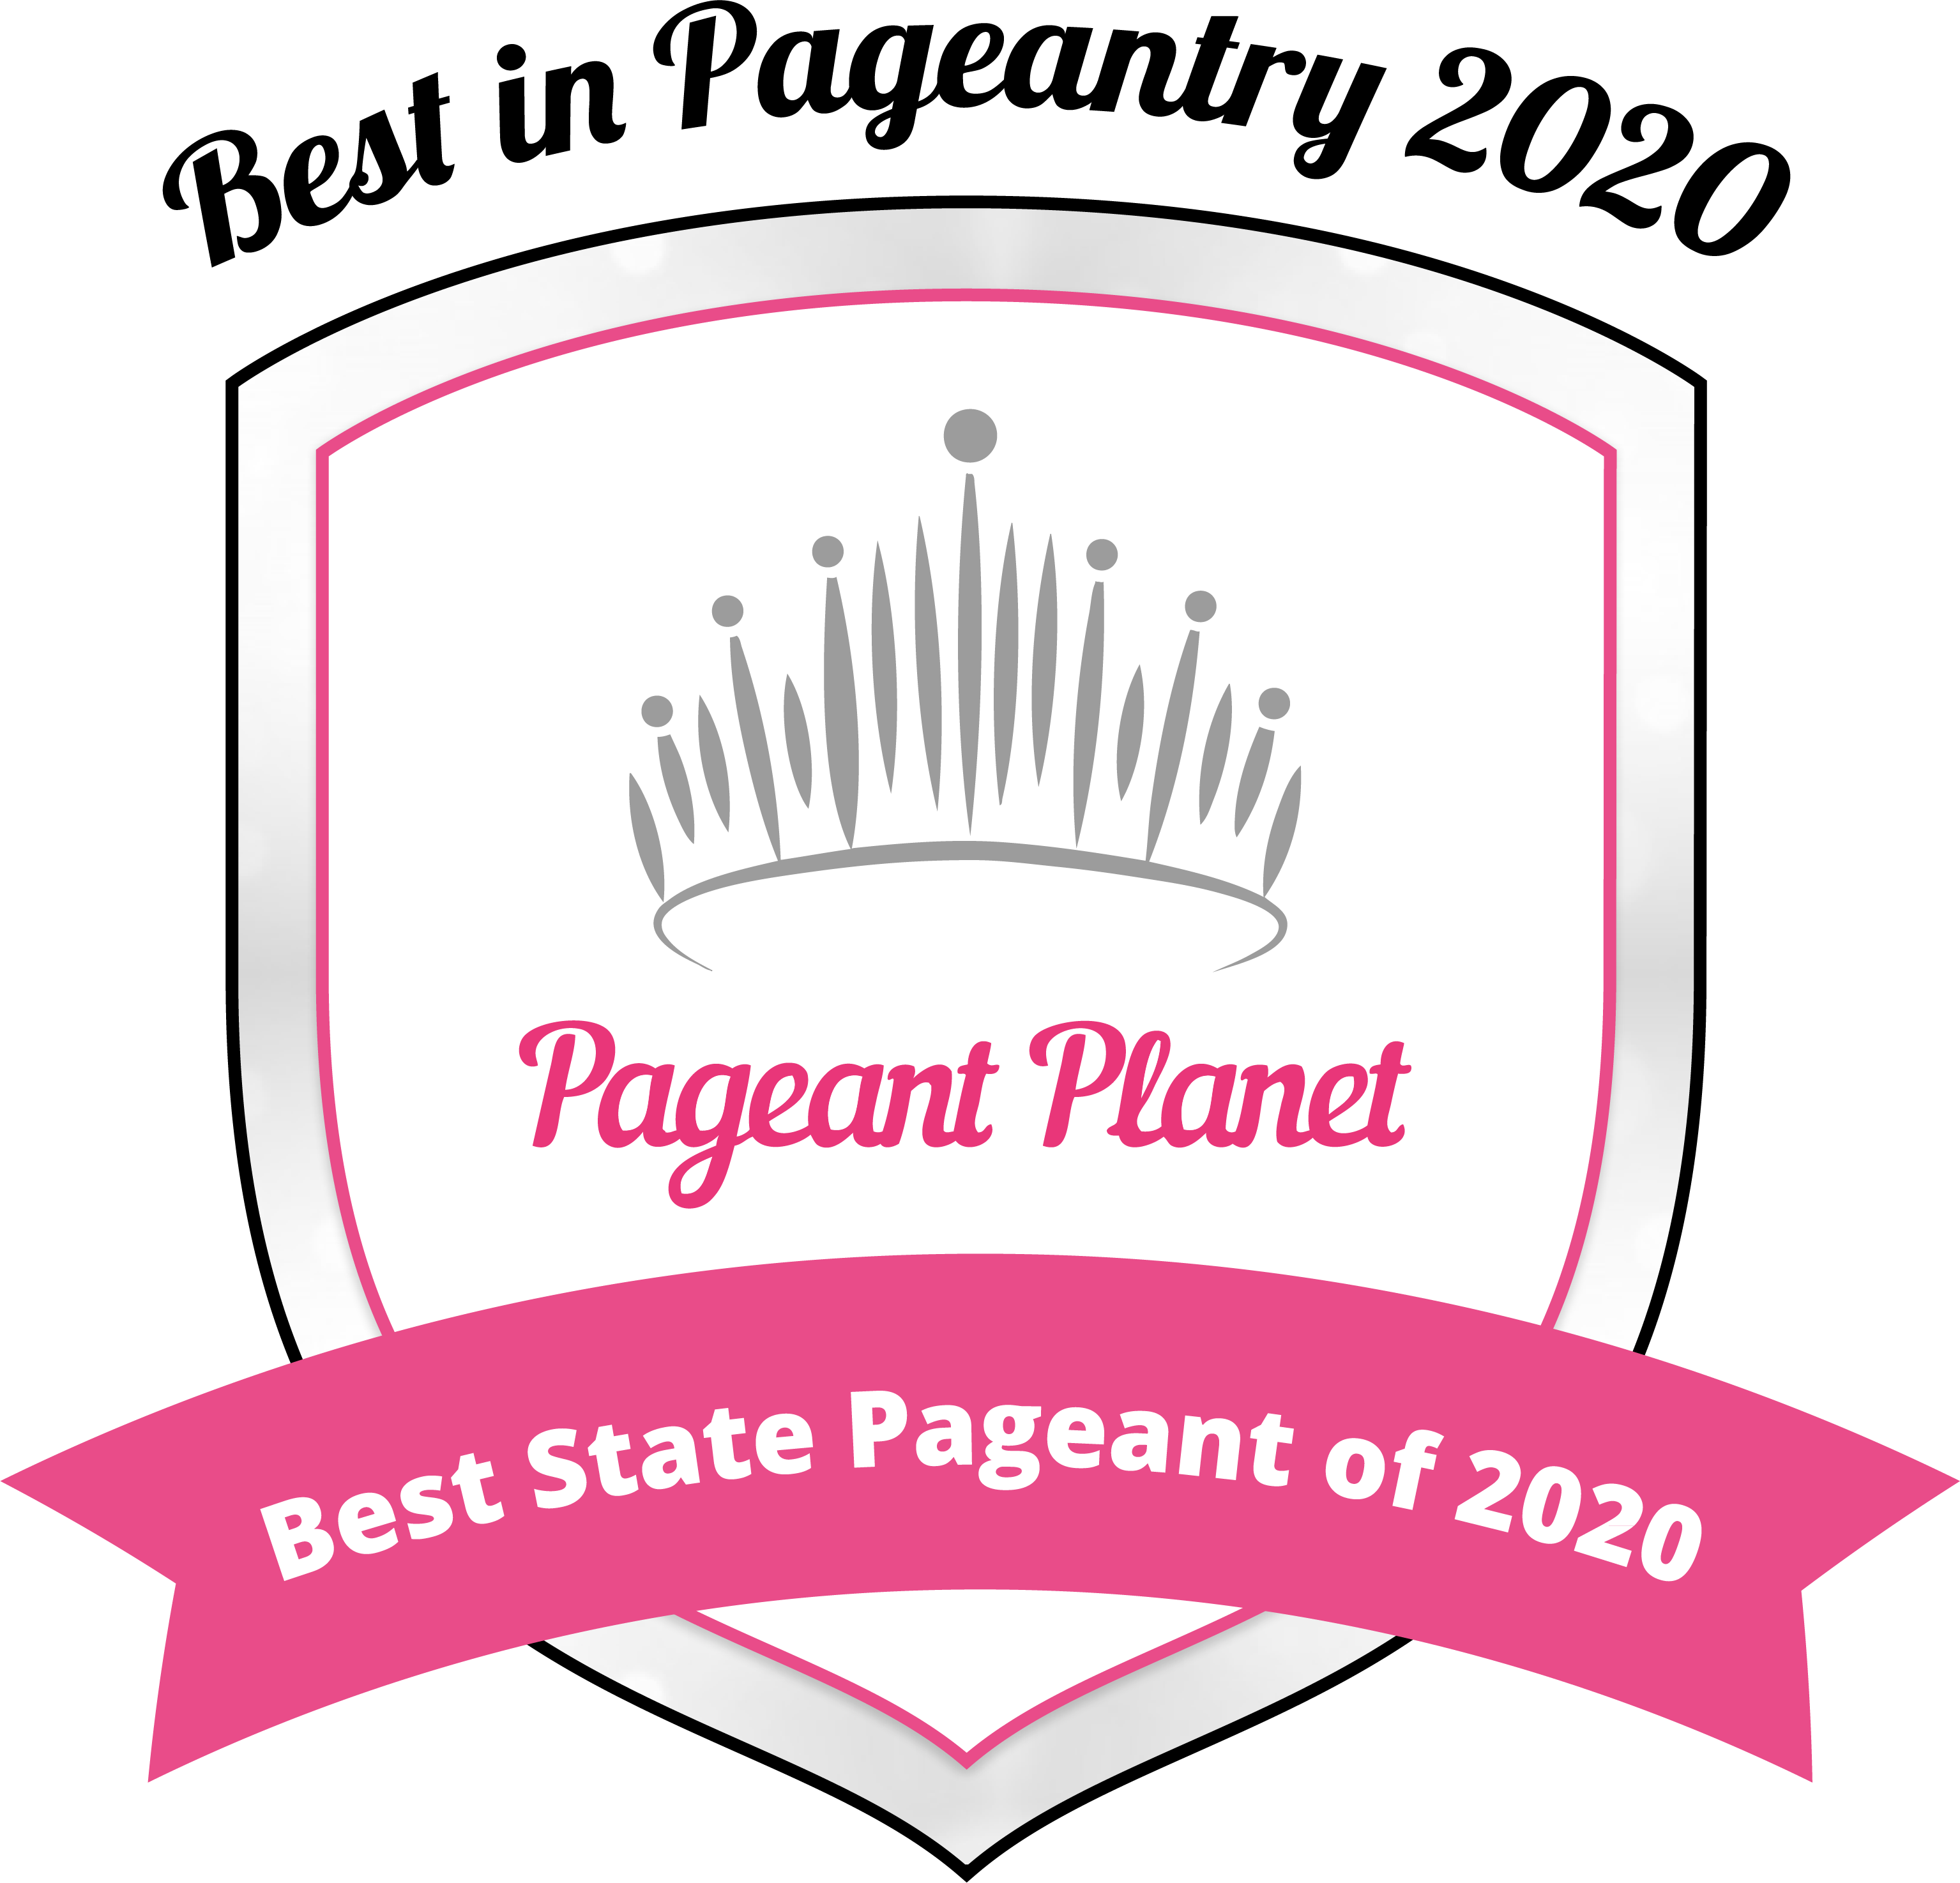 Best State Pageant of 2020